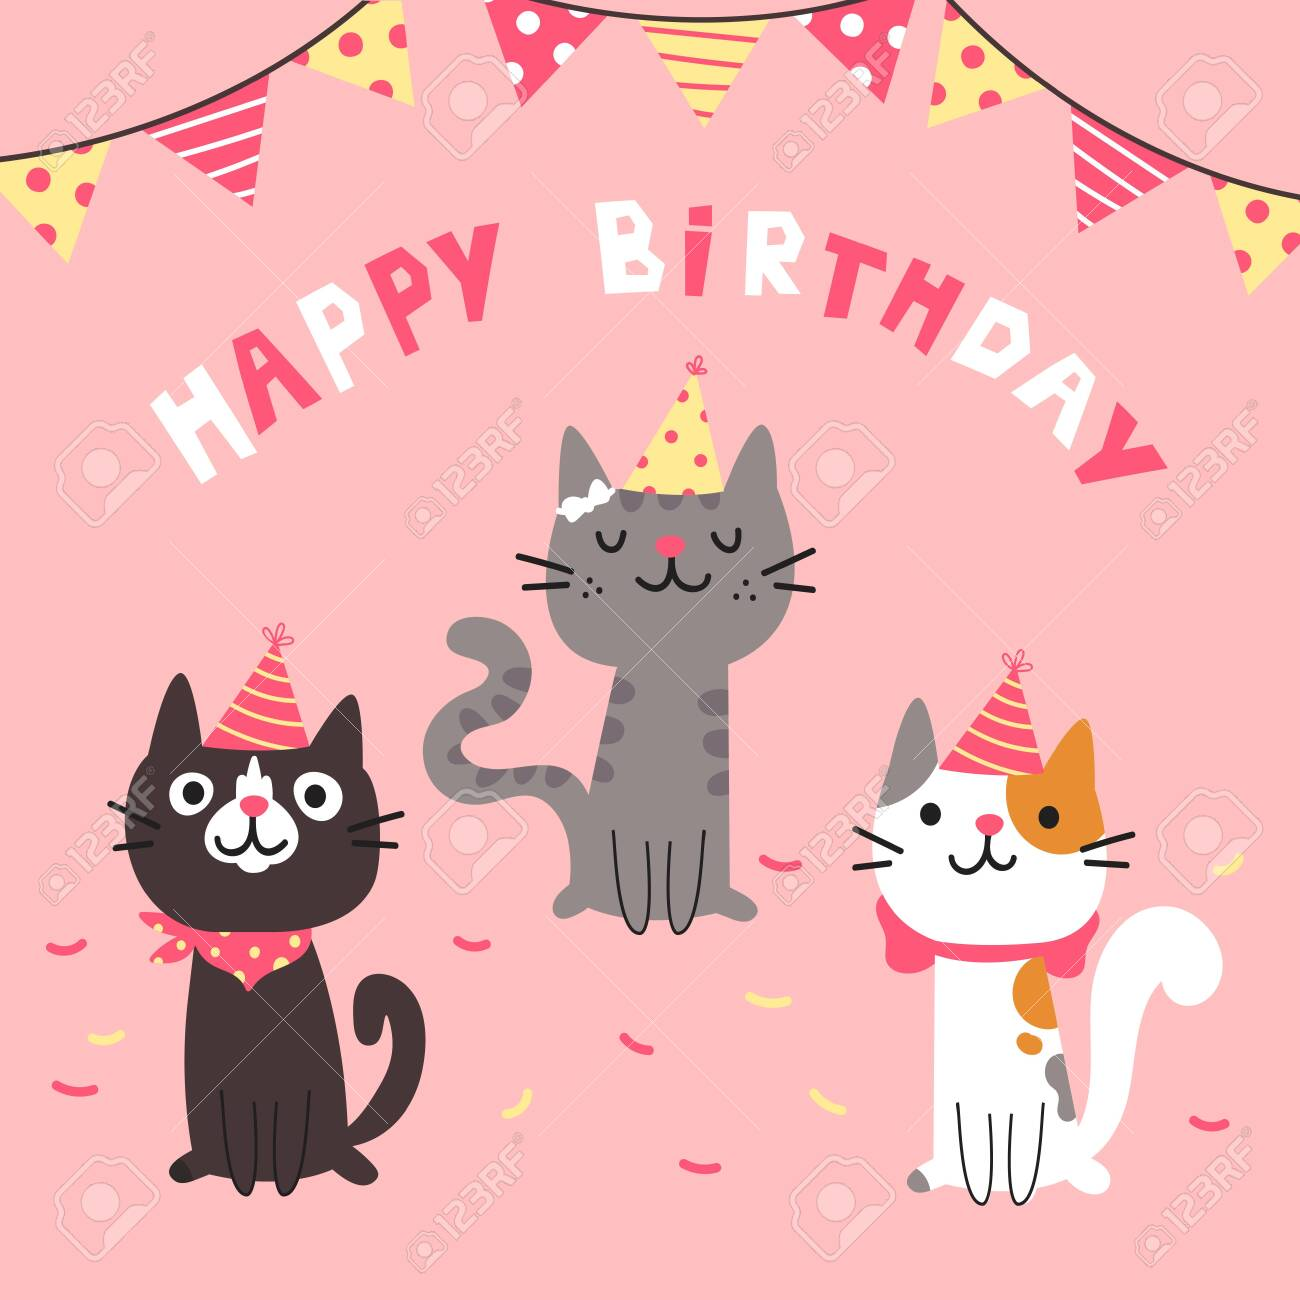 Set Of Different Cartoon Cats Happy Birthday Lettering Lovely Kittens Sitting Together Hand Drawn Pets In Festive Caps Greeting Card Vector Flat Cartoon Illustration Isolated On Pink Background Royalty Free Cliparts Vectors And Stock Illustration